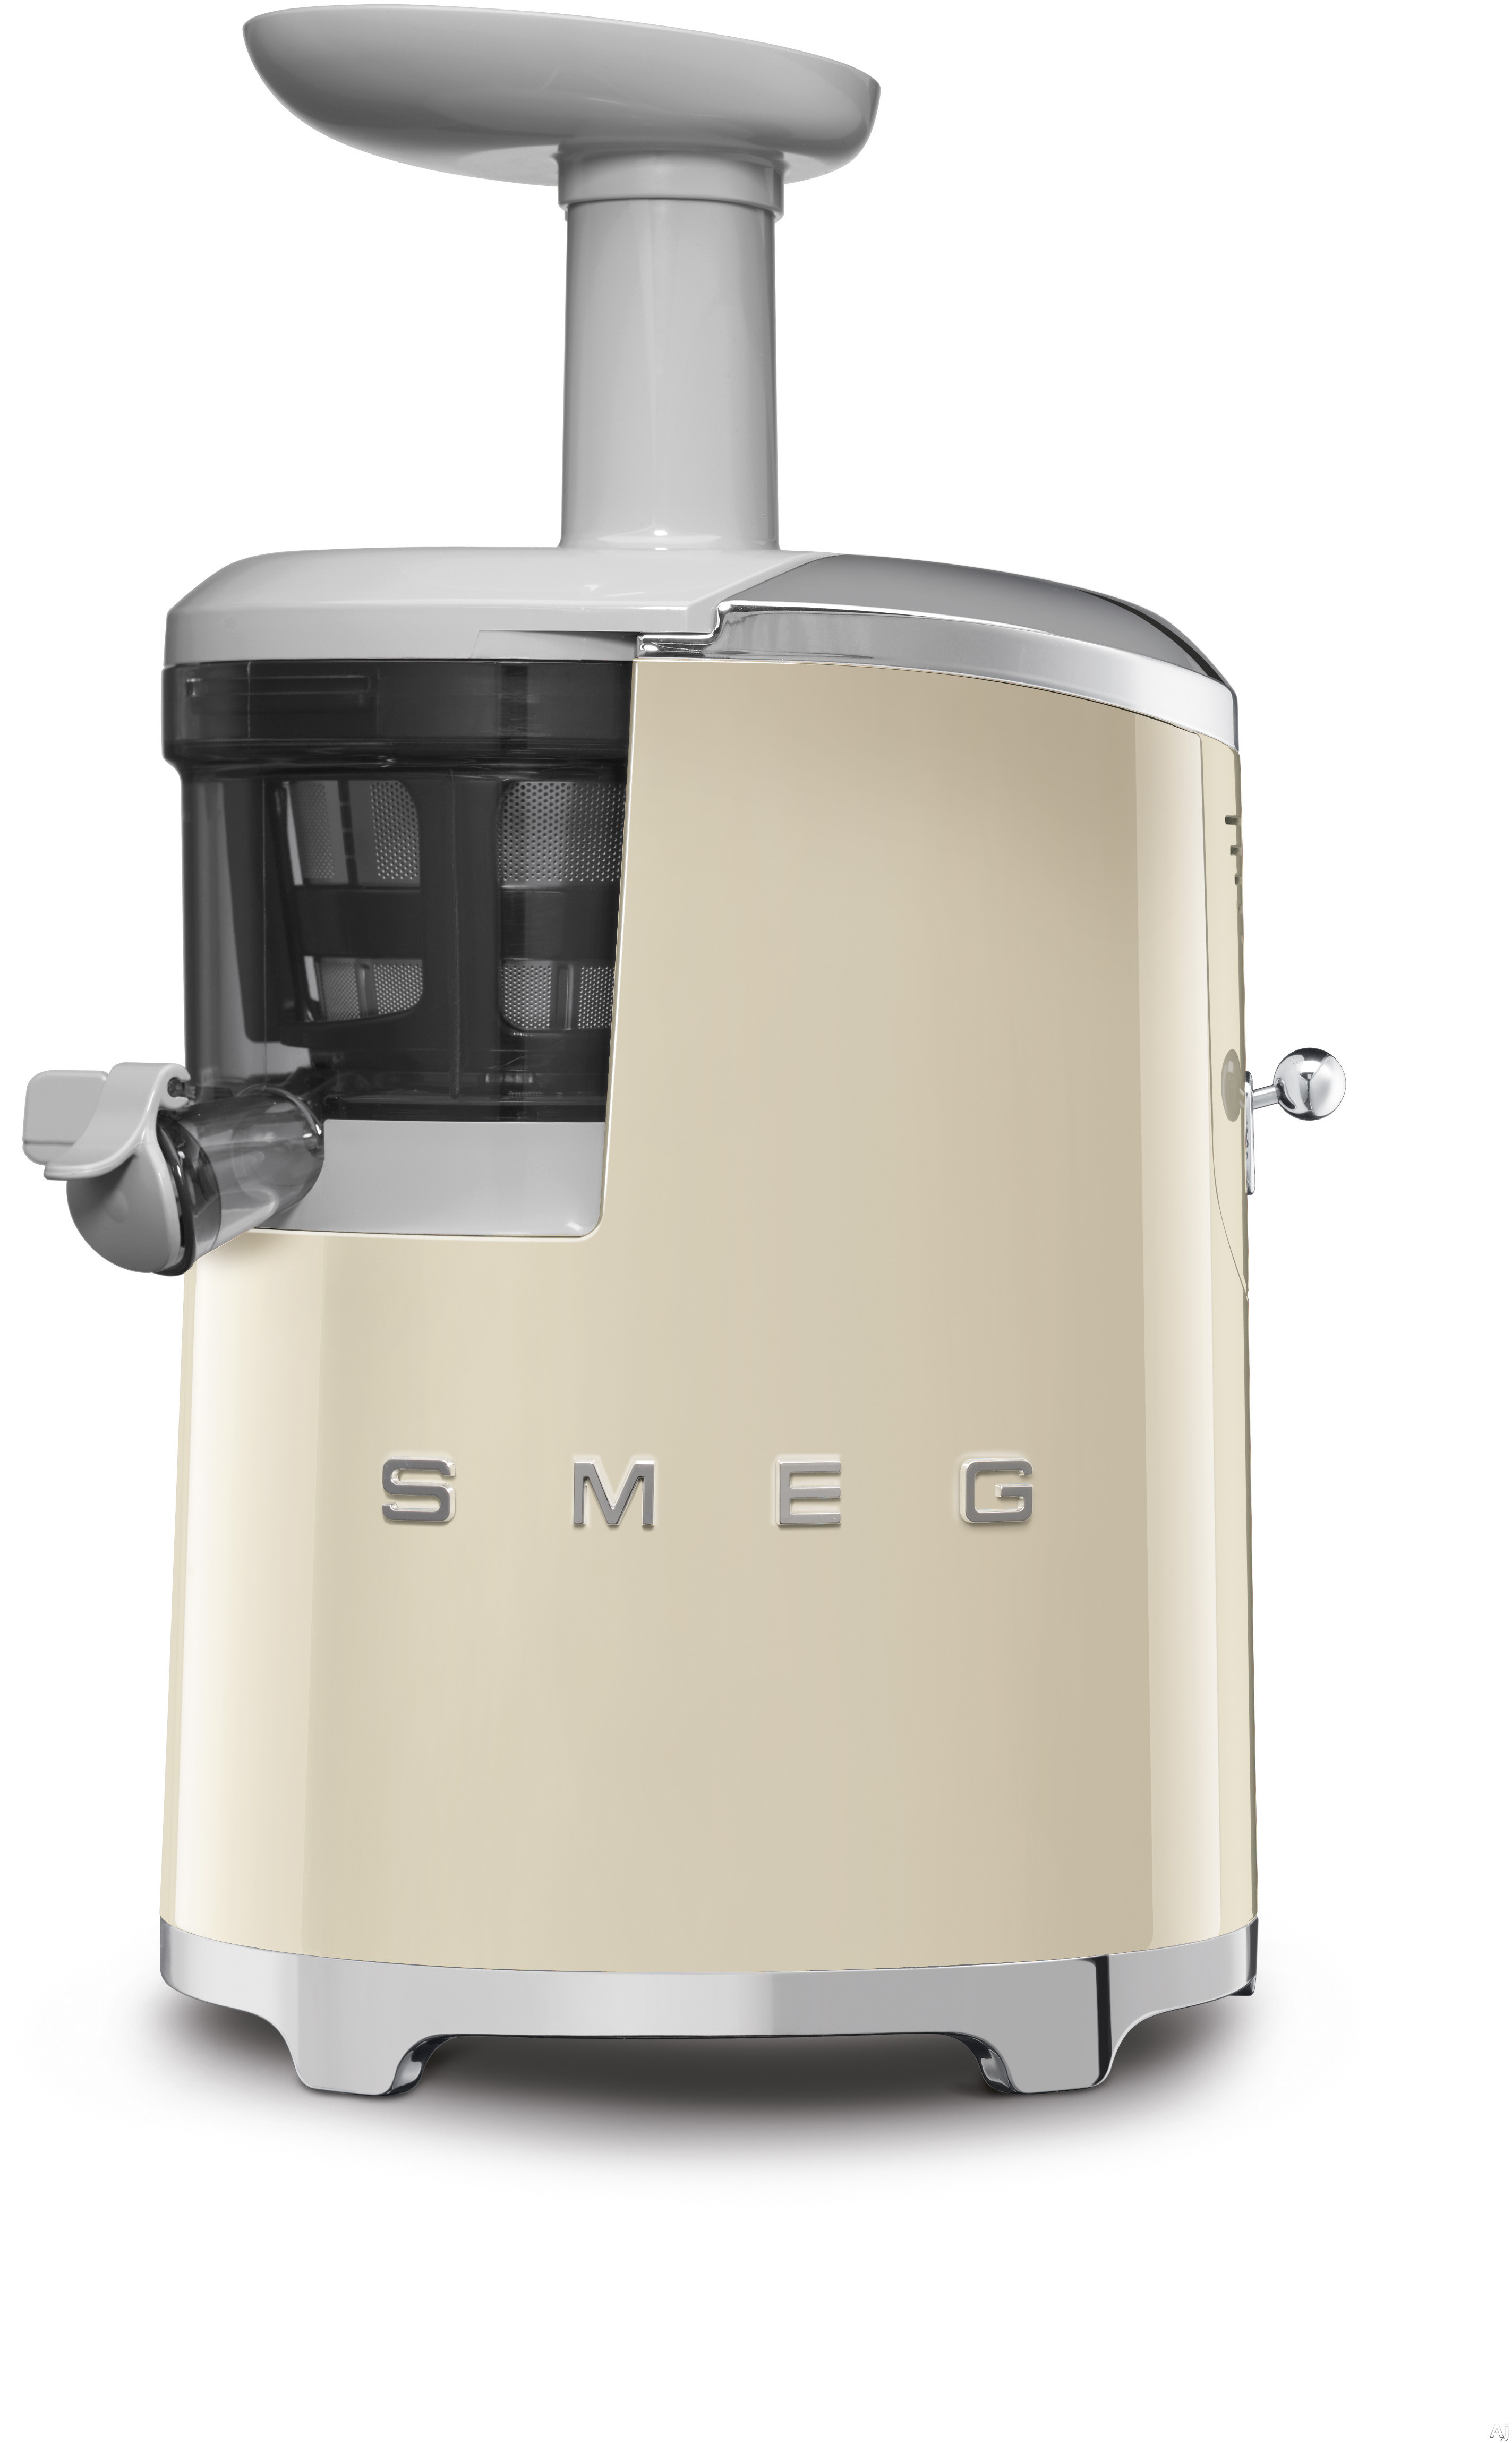 "Smeg 50's Retro Design SJF01CRUS 50's Retro Style Slow Juicer with Slow Squeezing Technologyâ""¢, Tritanâ""¢ Juice Collector, ULTEMâ""¢ Strainer Rotating Brush, Reverse Function, Anti-Slip Feet and 43 RPM: Cream"